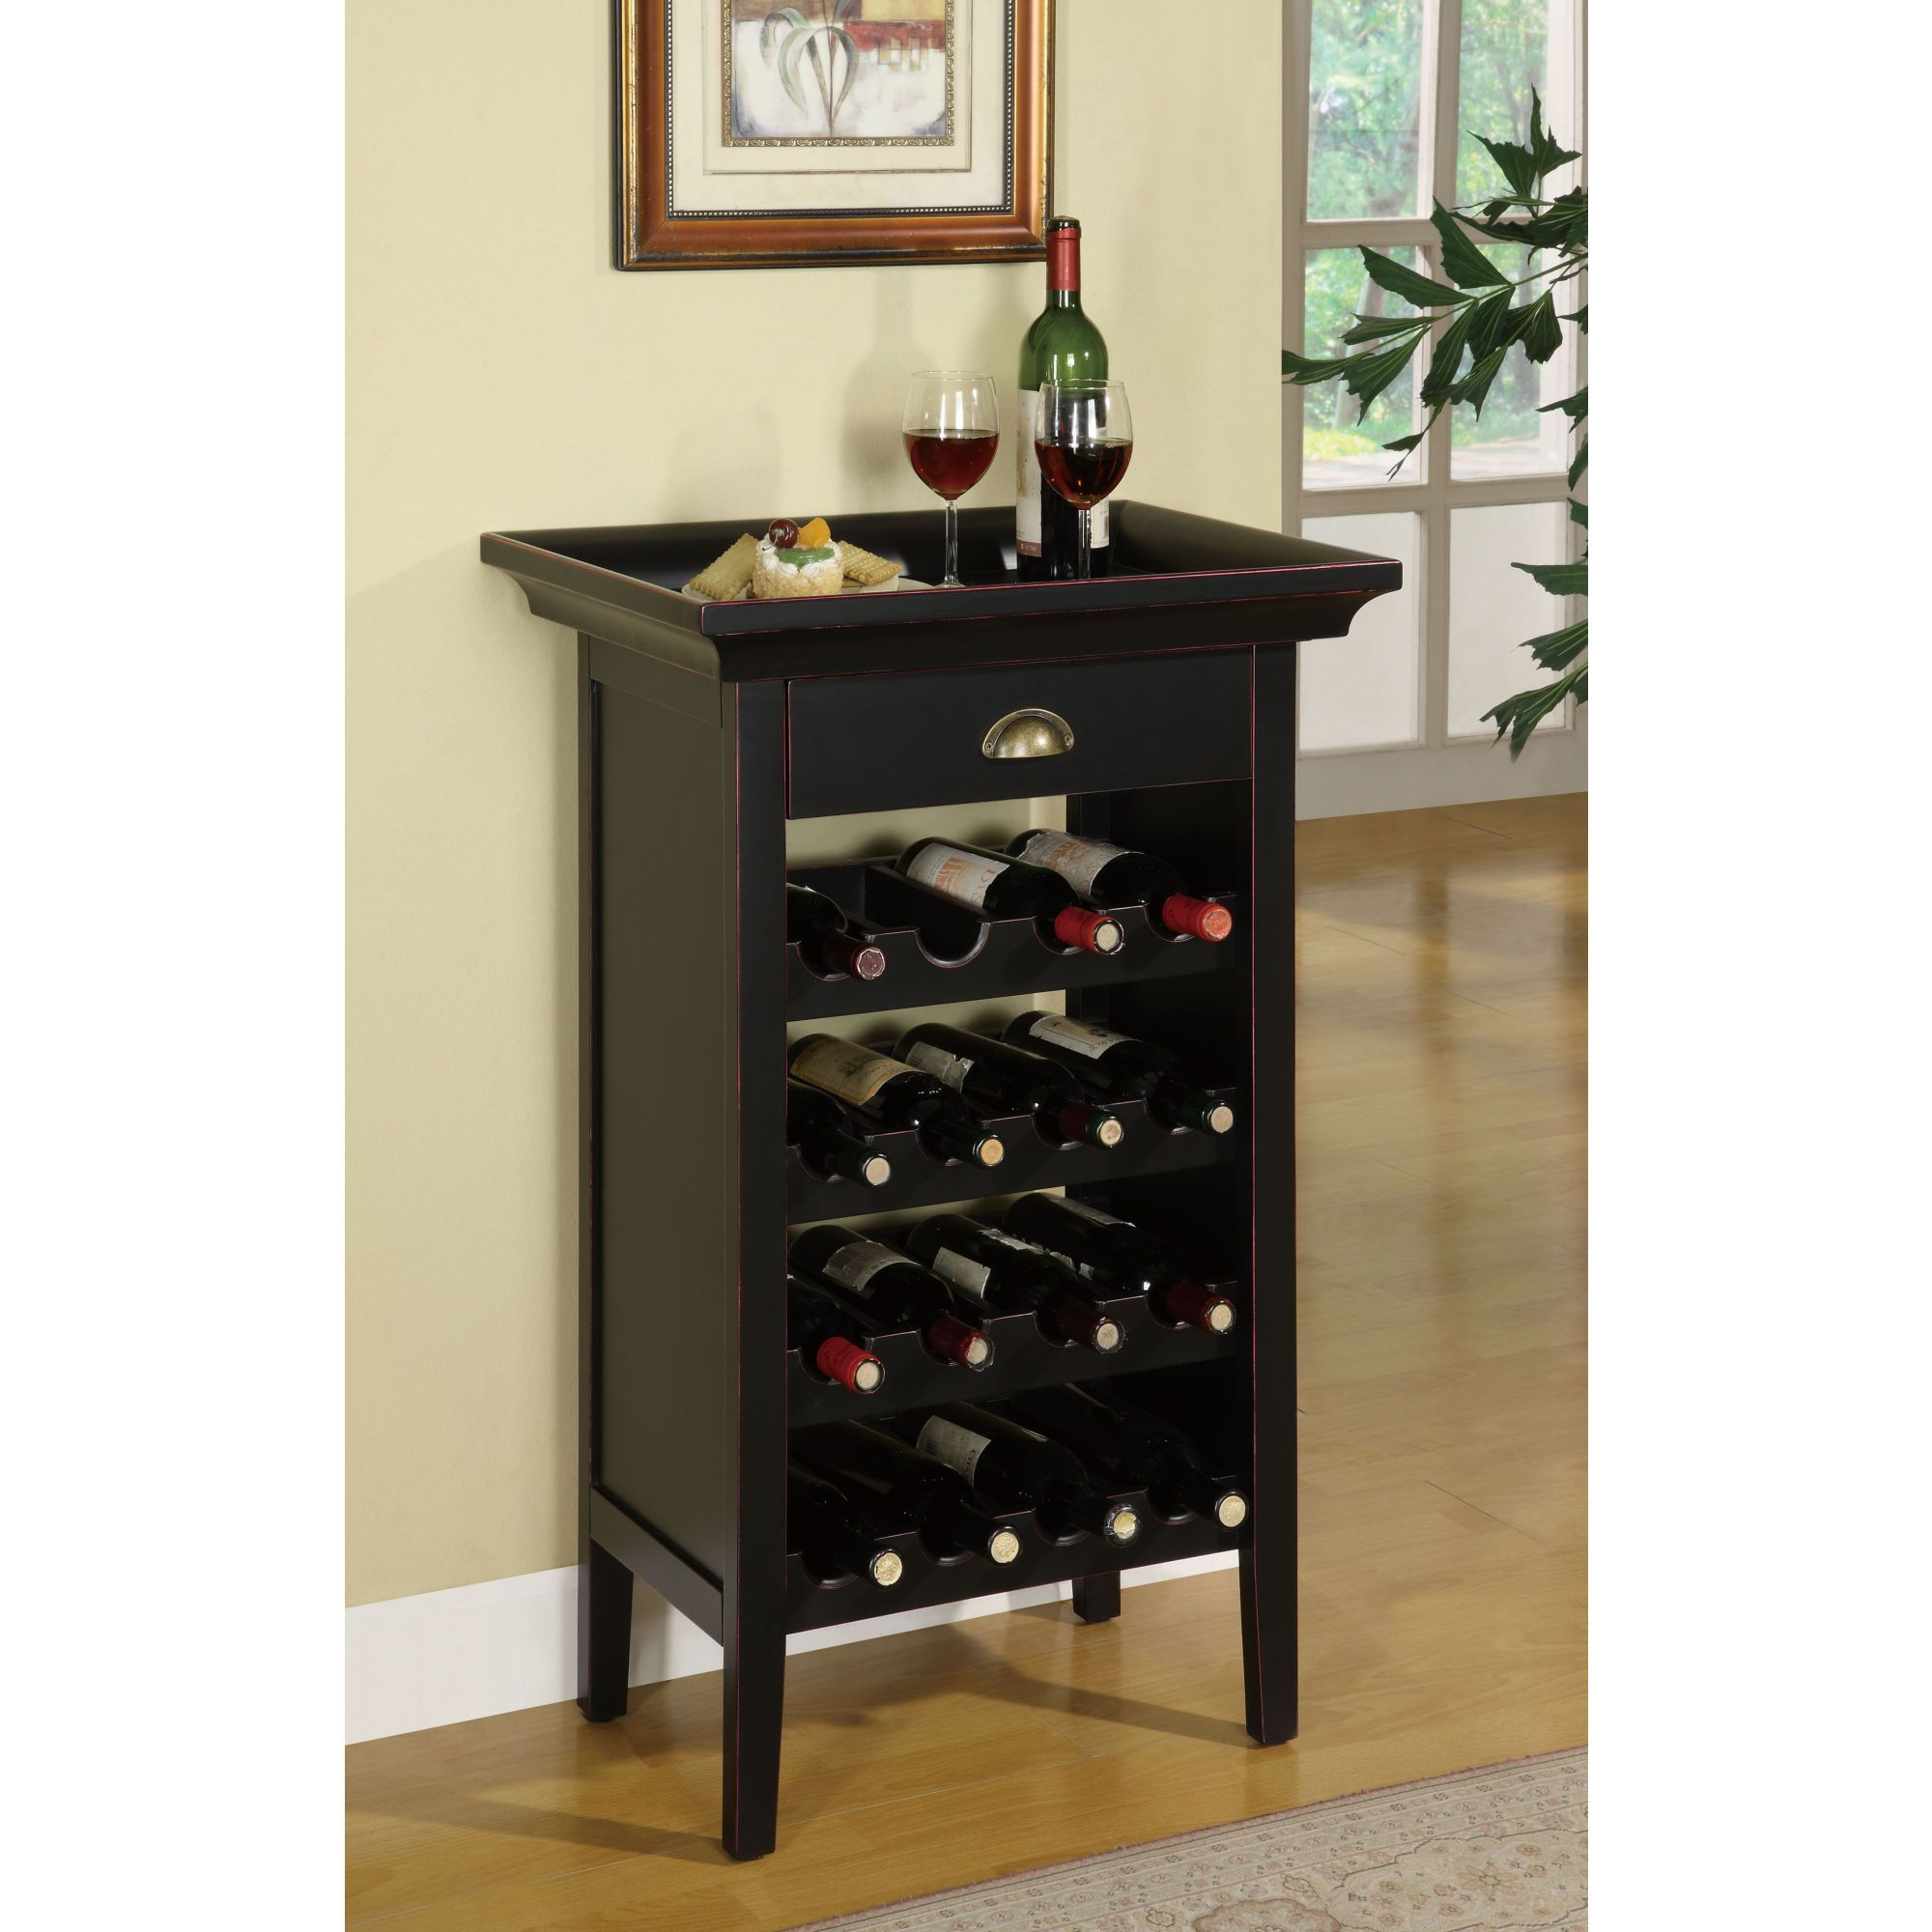 Rub Through 16 Bottle Wine Cabinet For Sale Wayfair Wine Cabinets Wine Rack Cabinet Modern Wine Rack